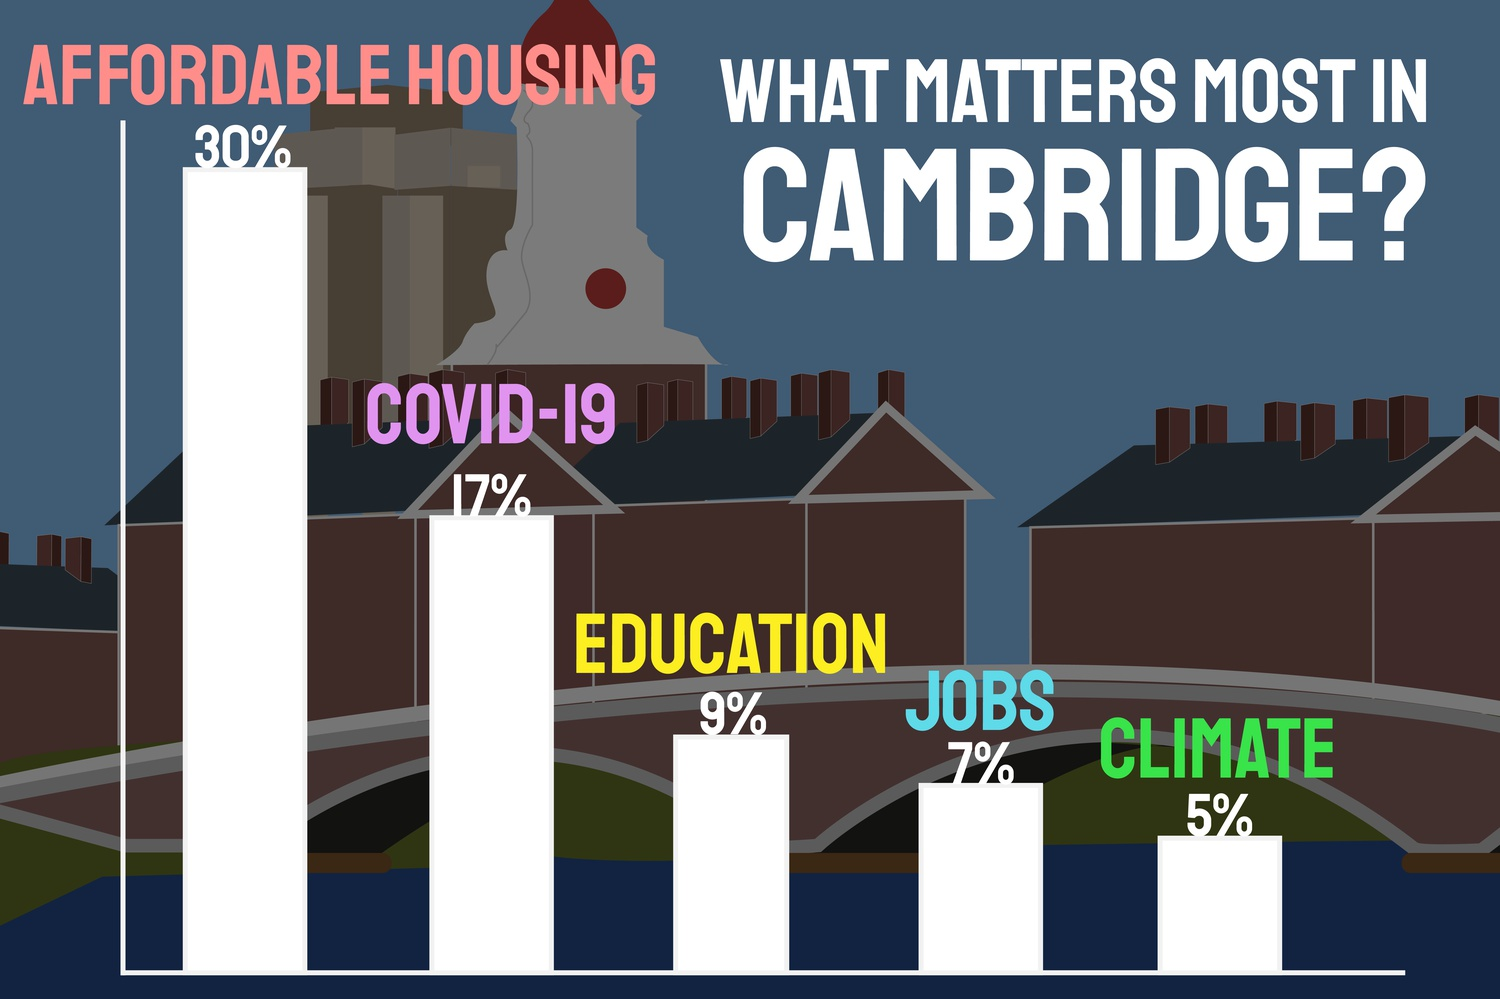 Despite the pandemic, the most important issue facing Cambridge is the lack of affordable housing, according those surveyed during the biennial City of Cambridge Resident Telephone Survey.